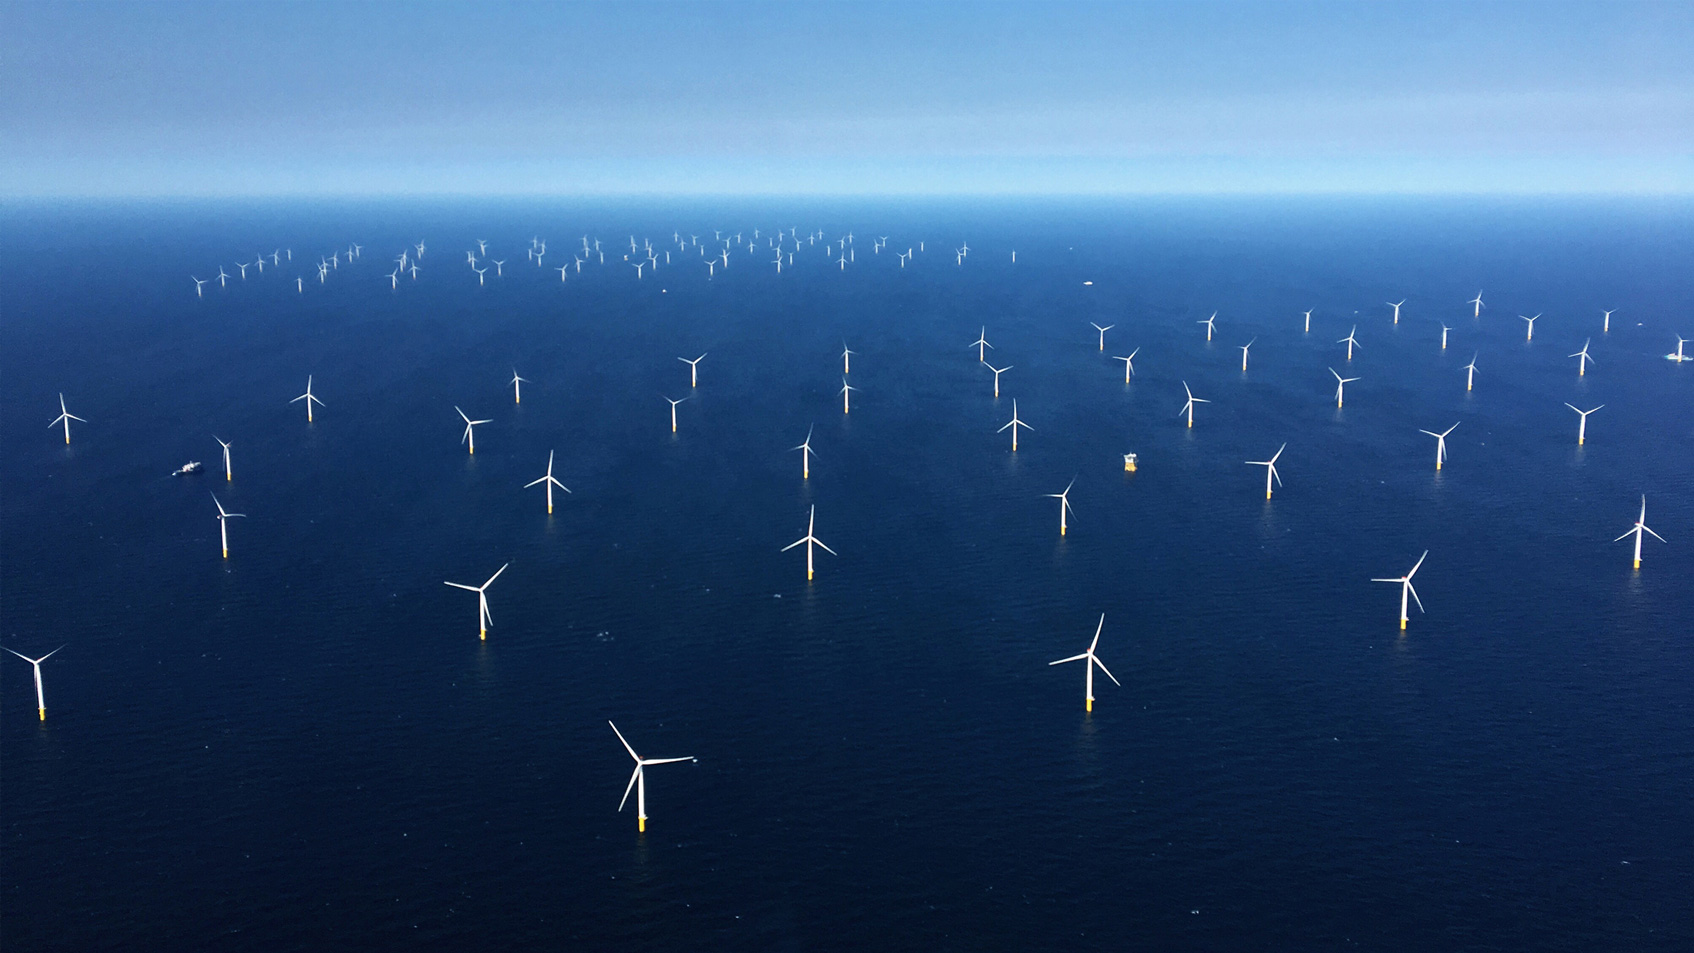 SEAWIND and IBERDROLA become partners for offshore wind projects in Poland  - Fritz Kaiser Group